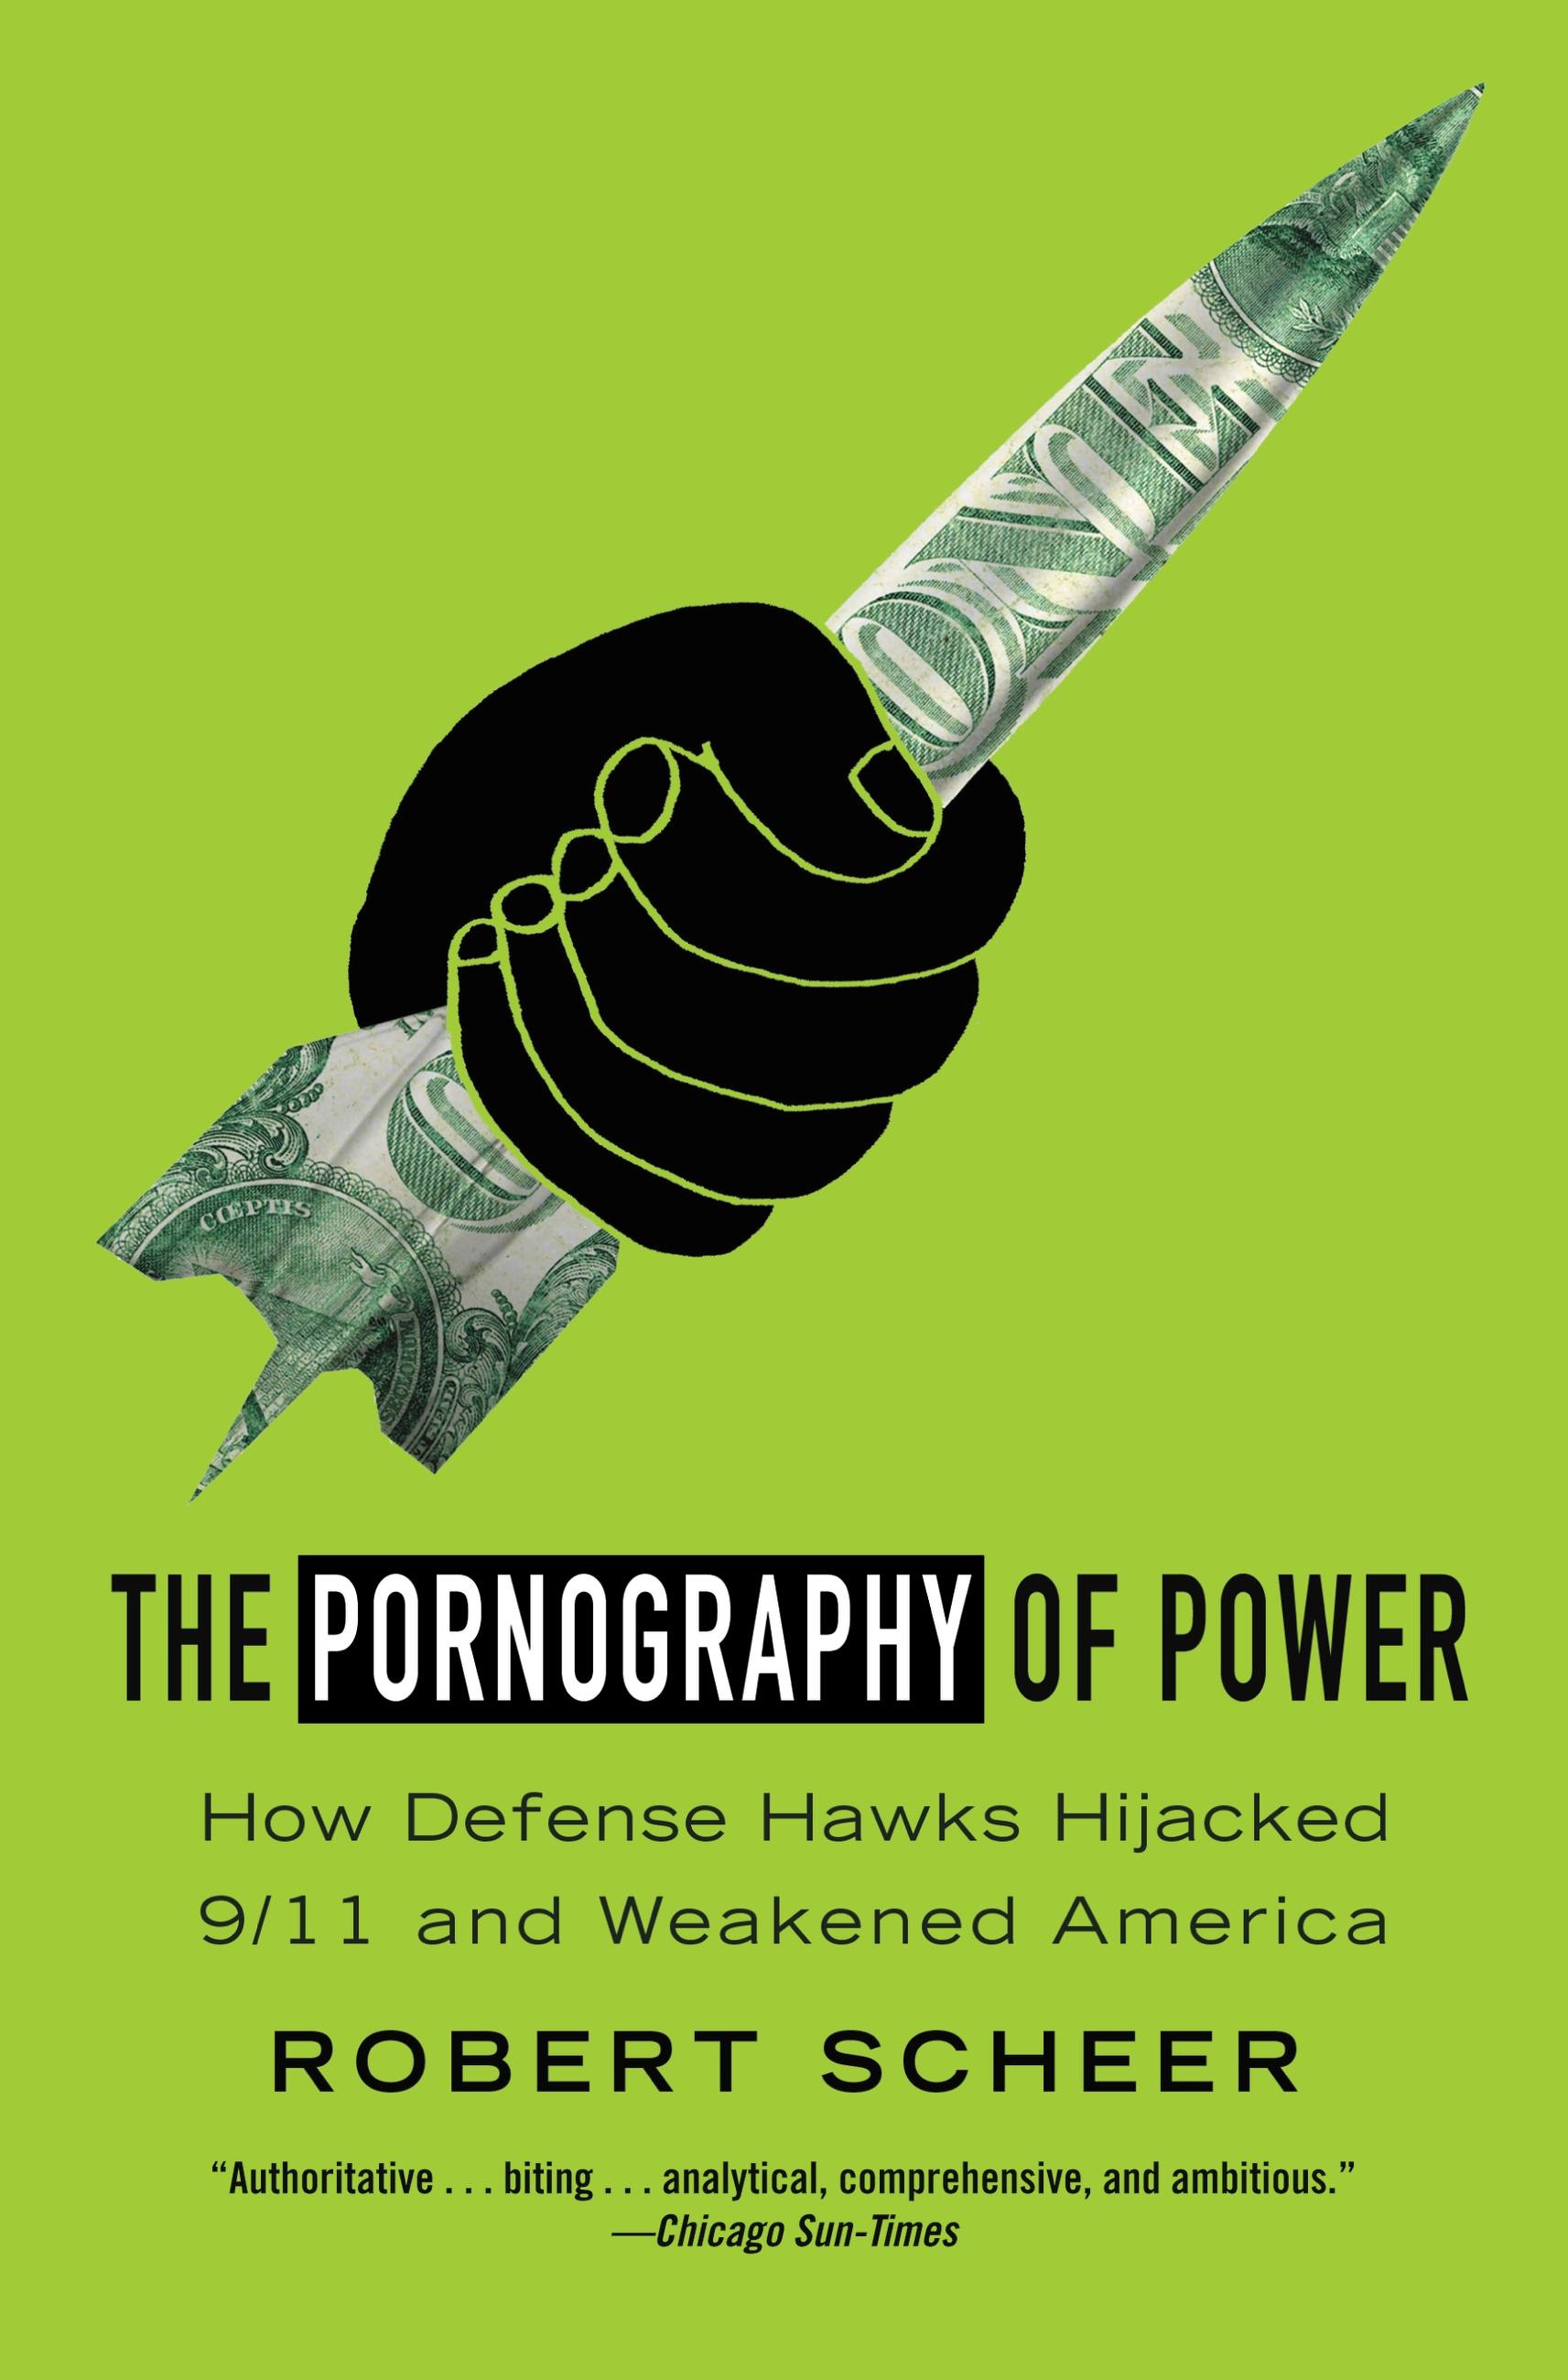 The Pornography of Power